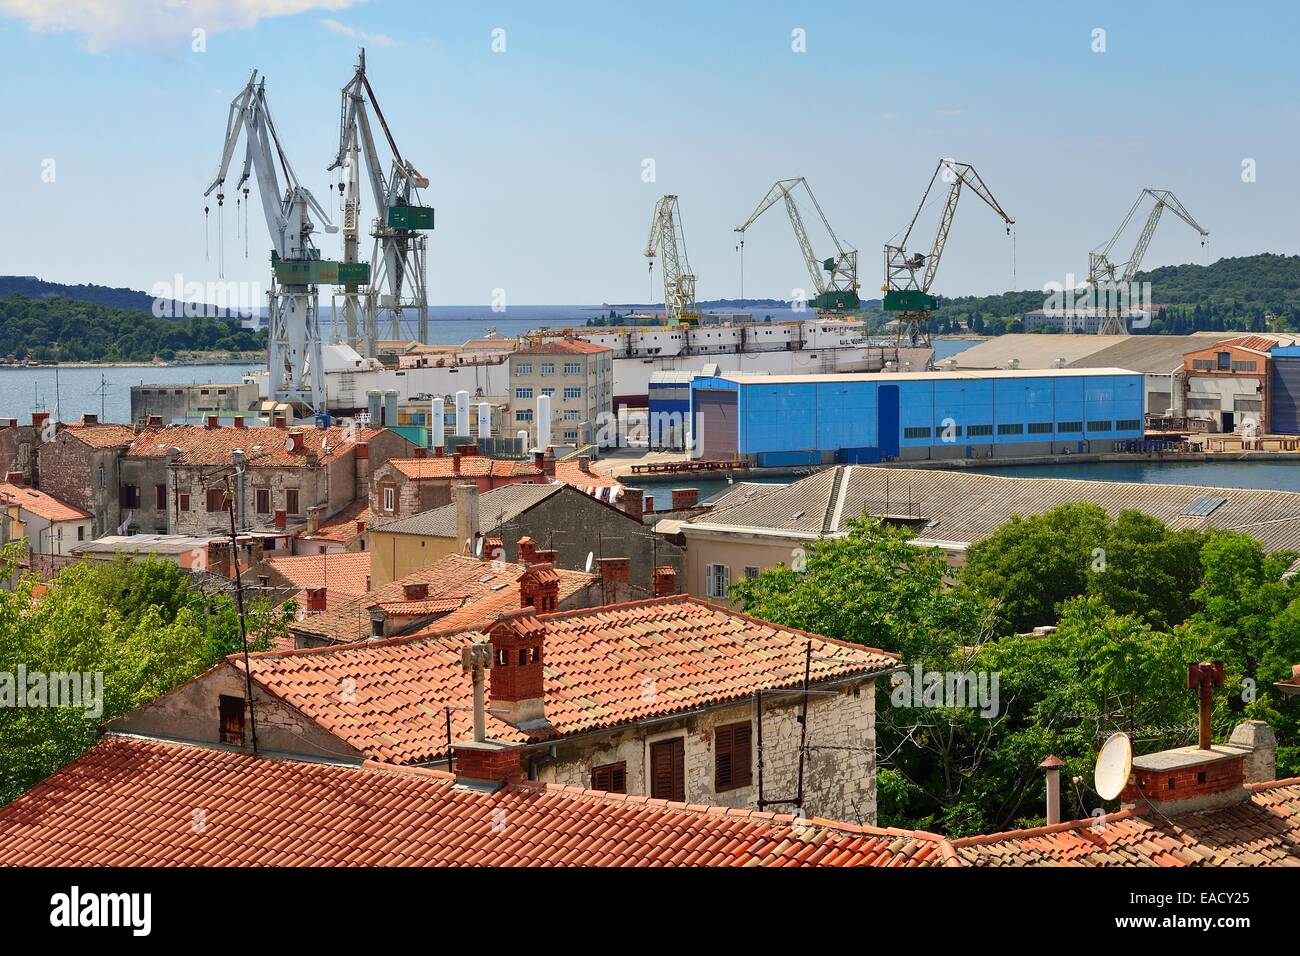 View over the rooftops of the city on the loading cranes in the port, Pula, Istria, Croatia, Europe - Stock Image